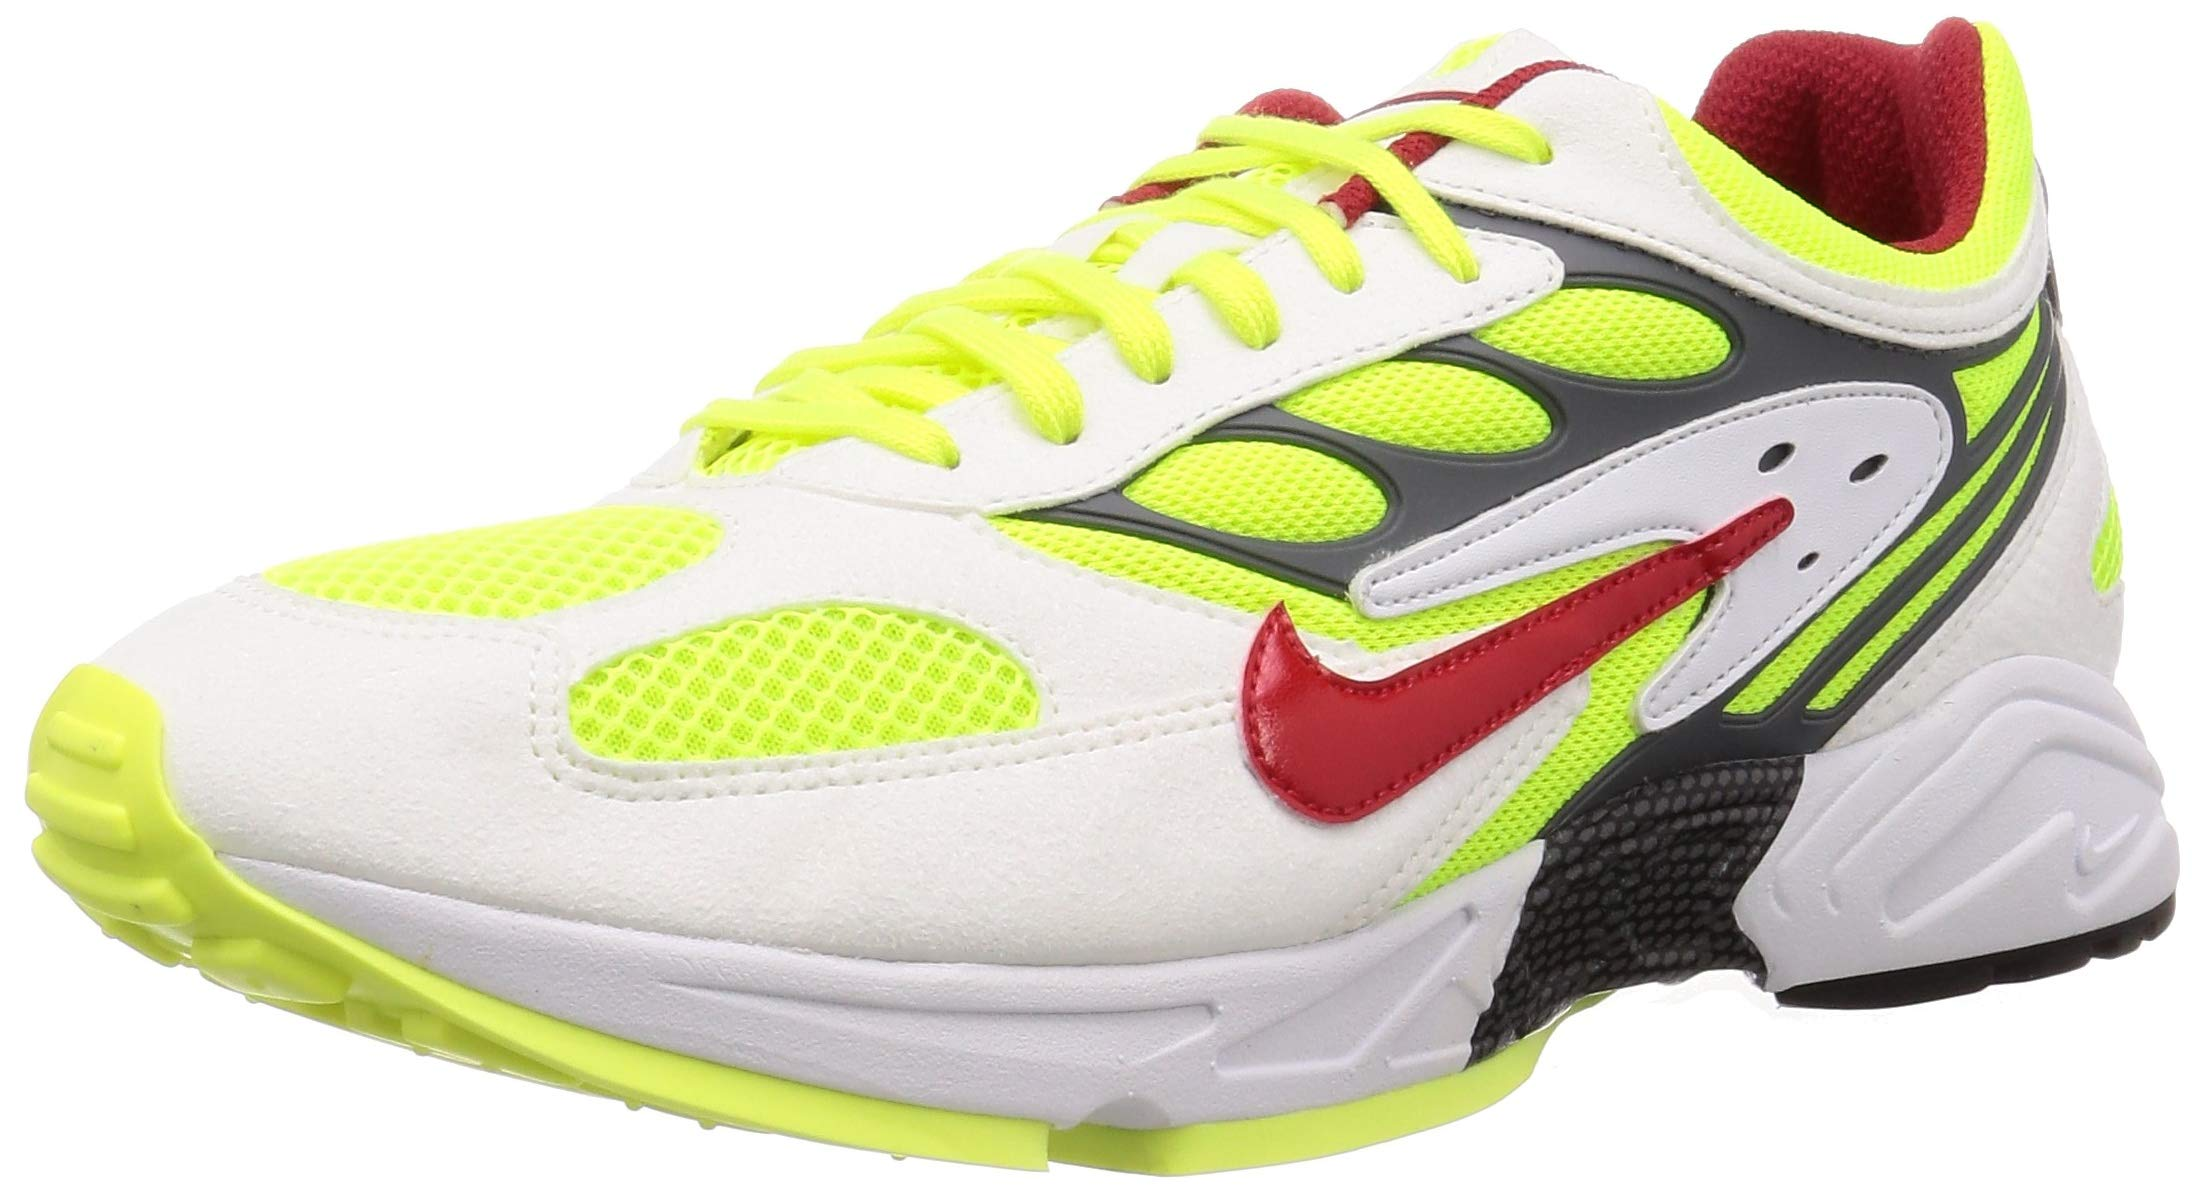 Nike Air Ghost Racer Mens Sneakers AT5410-100, White/Atom Red-Neon Yellow-Dark Grey, Size US 10.5 by Nike